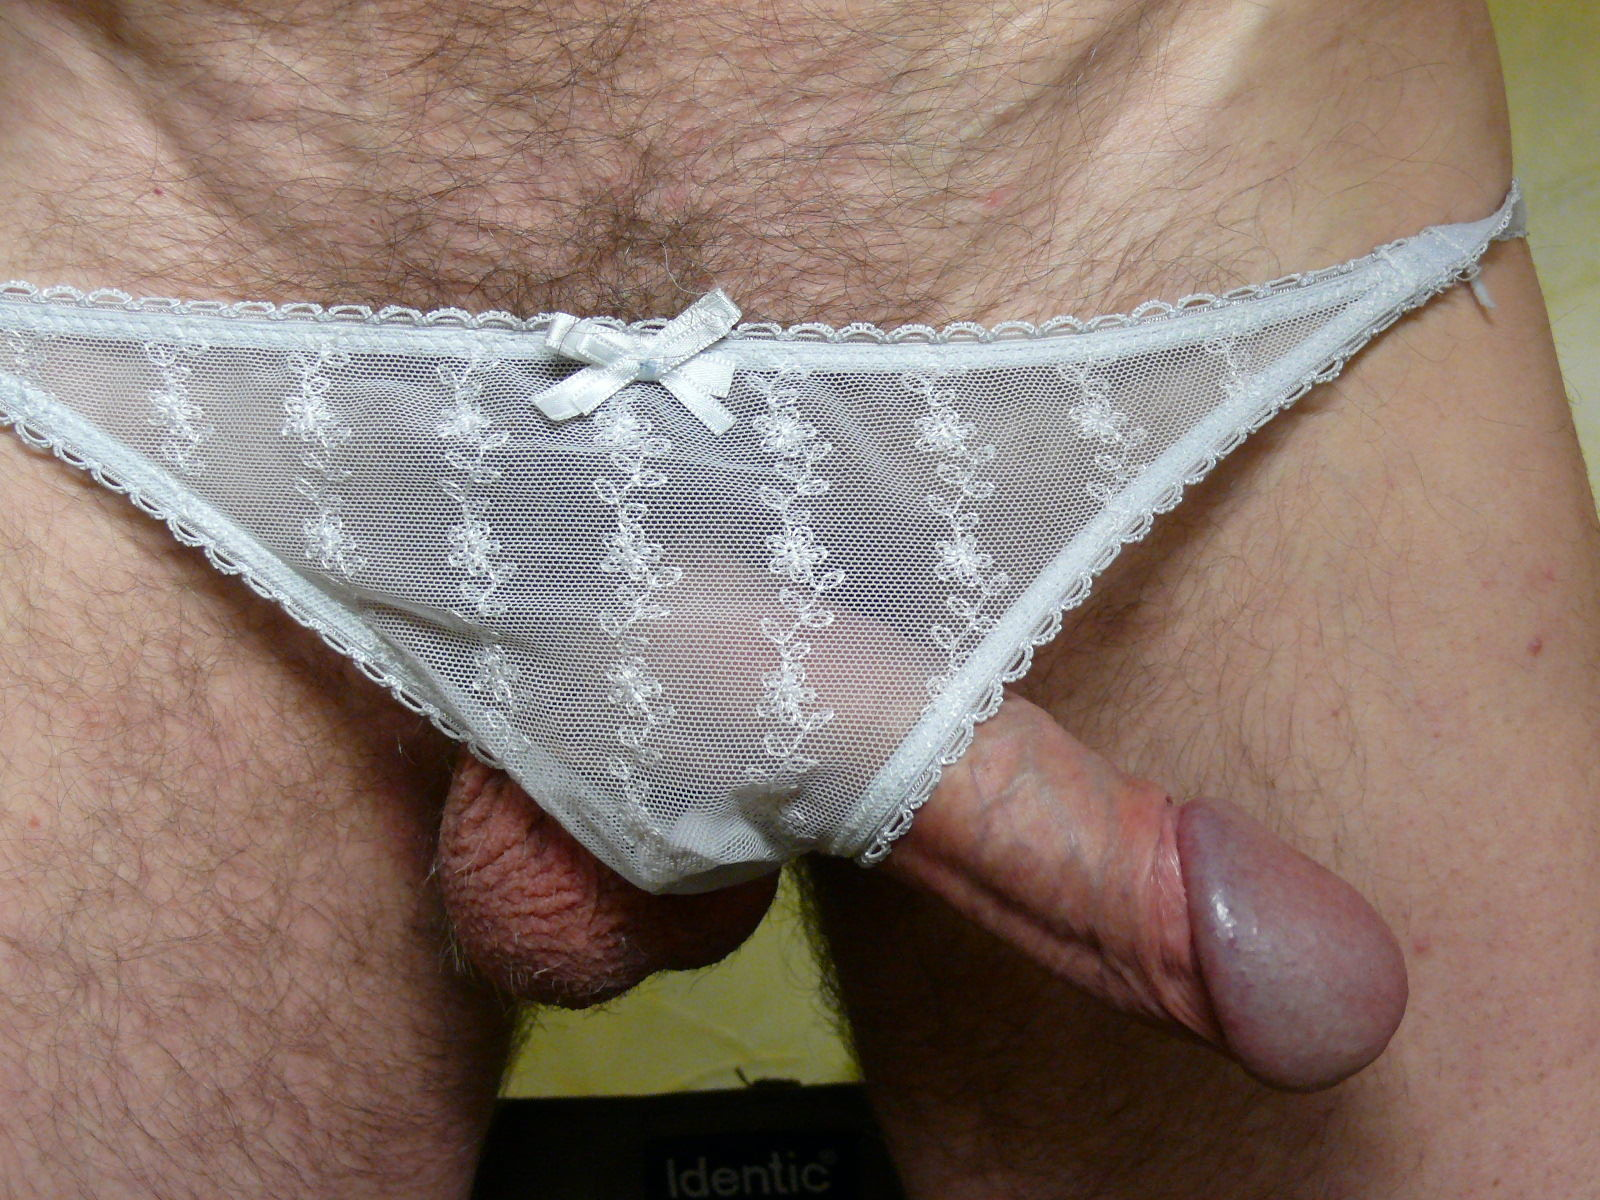 My-cock-in-panties-for-my-gay-friends